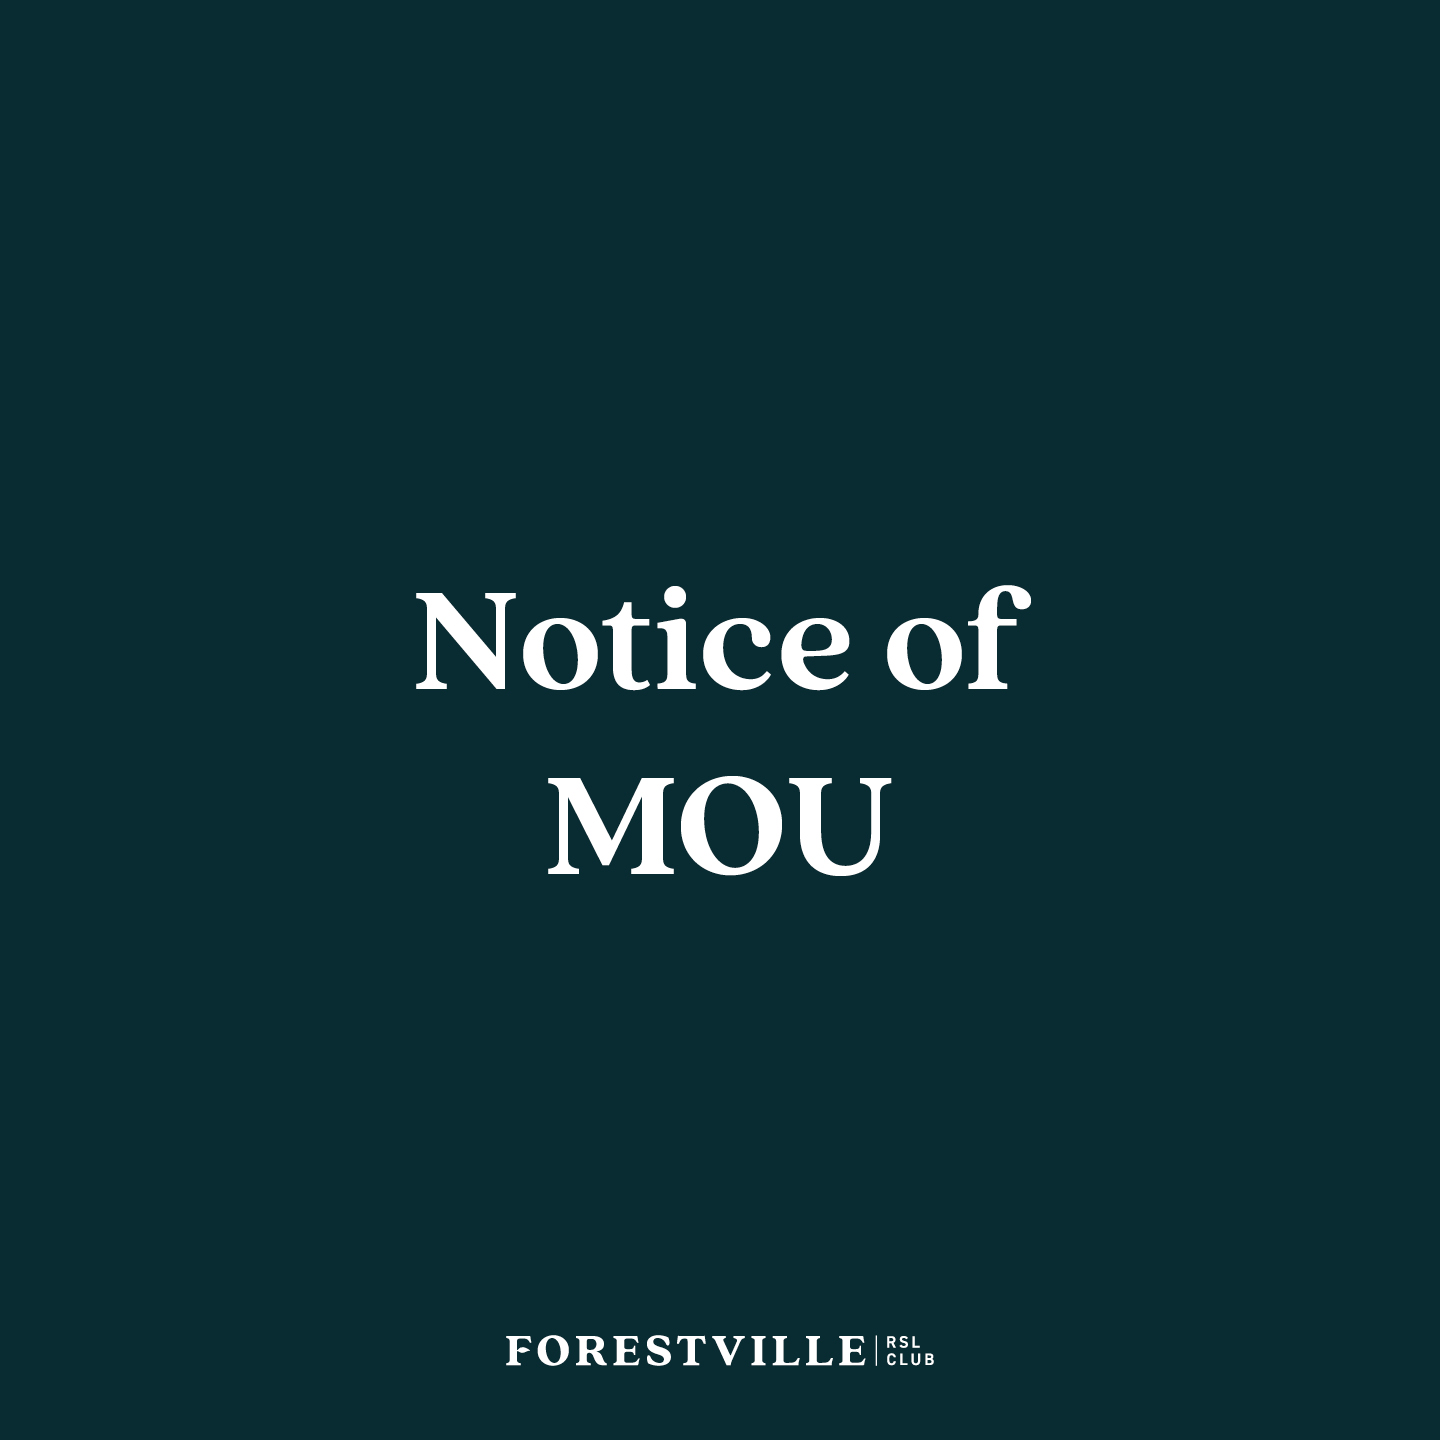 Notice of MOU